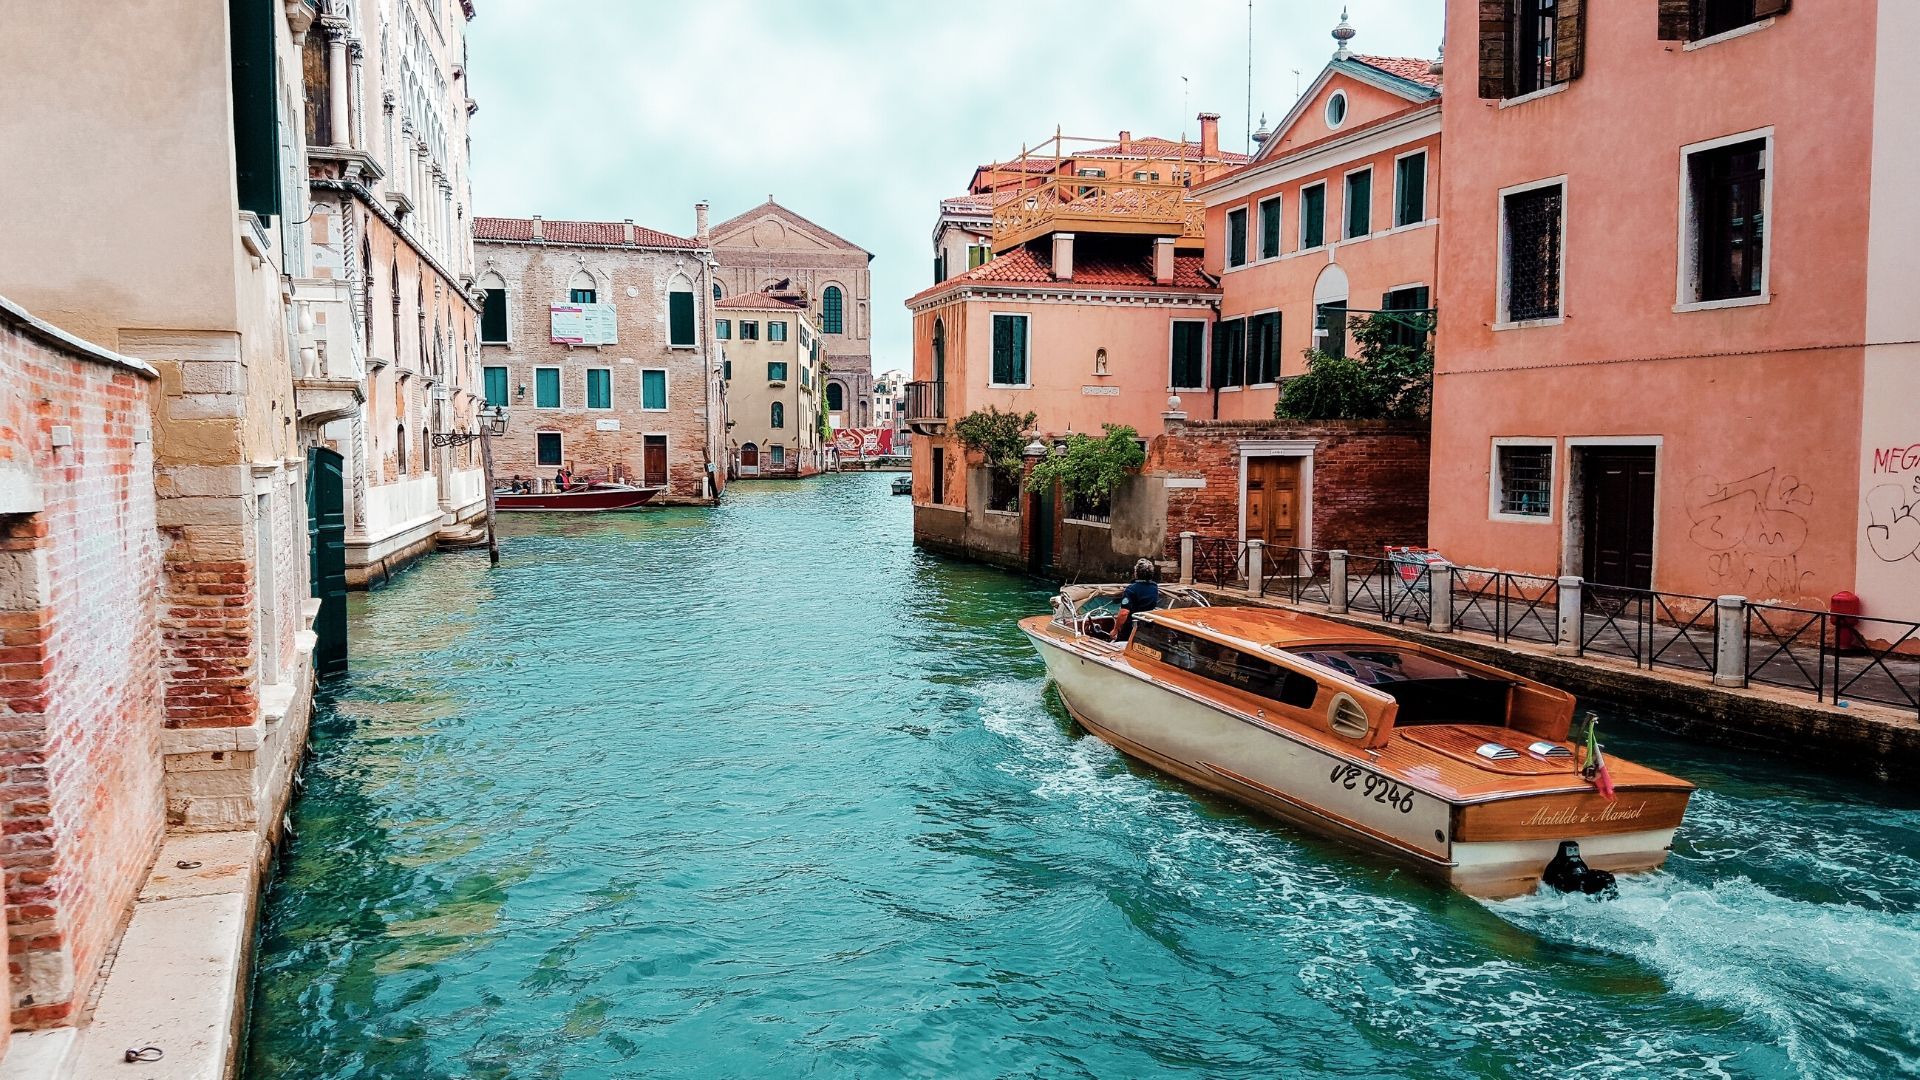 Grand canal boat tour, Murano, Burano & lunch